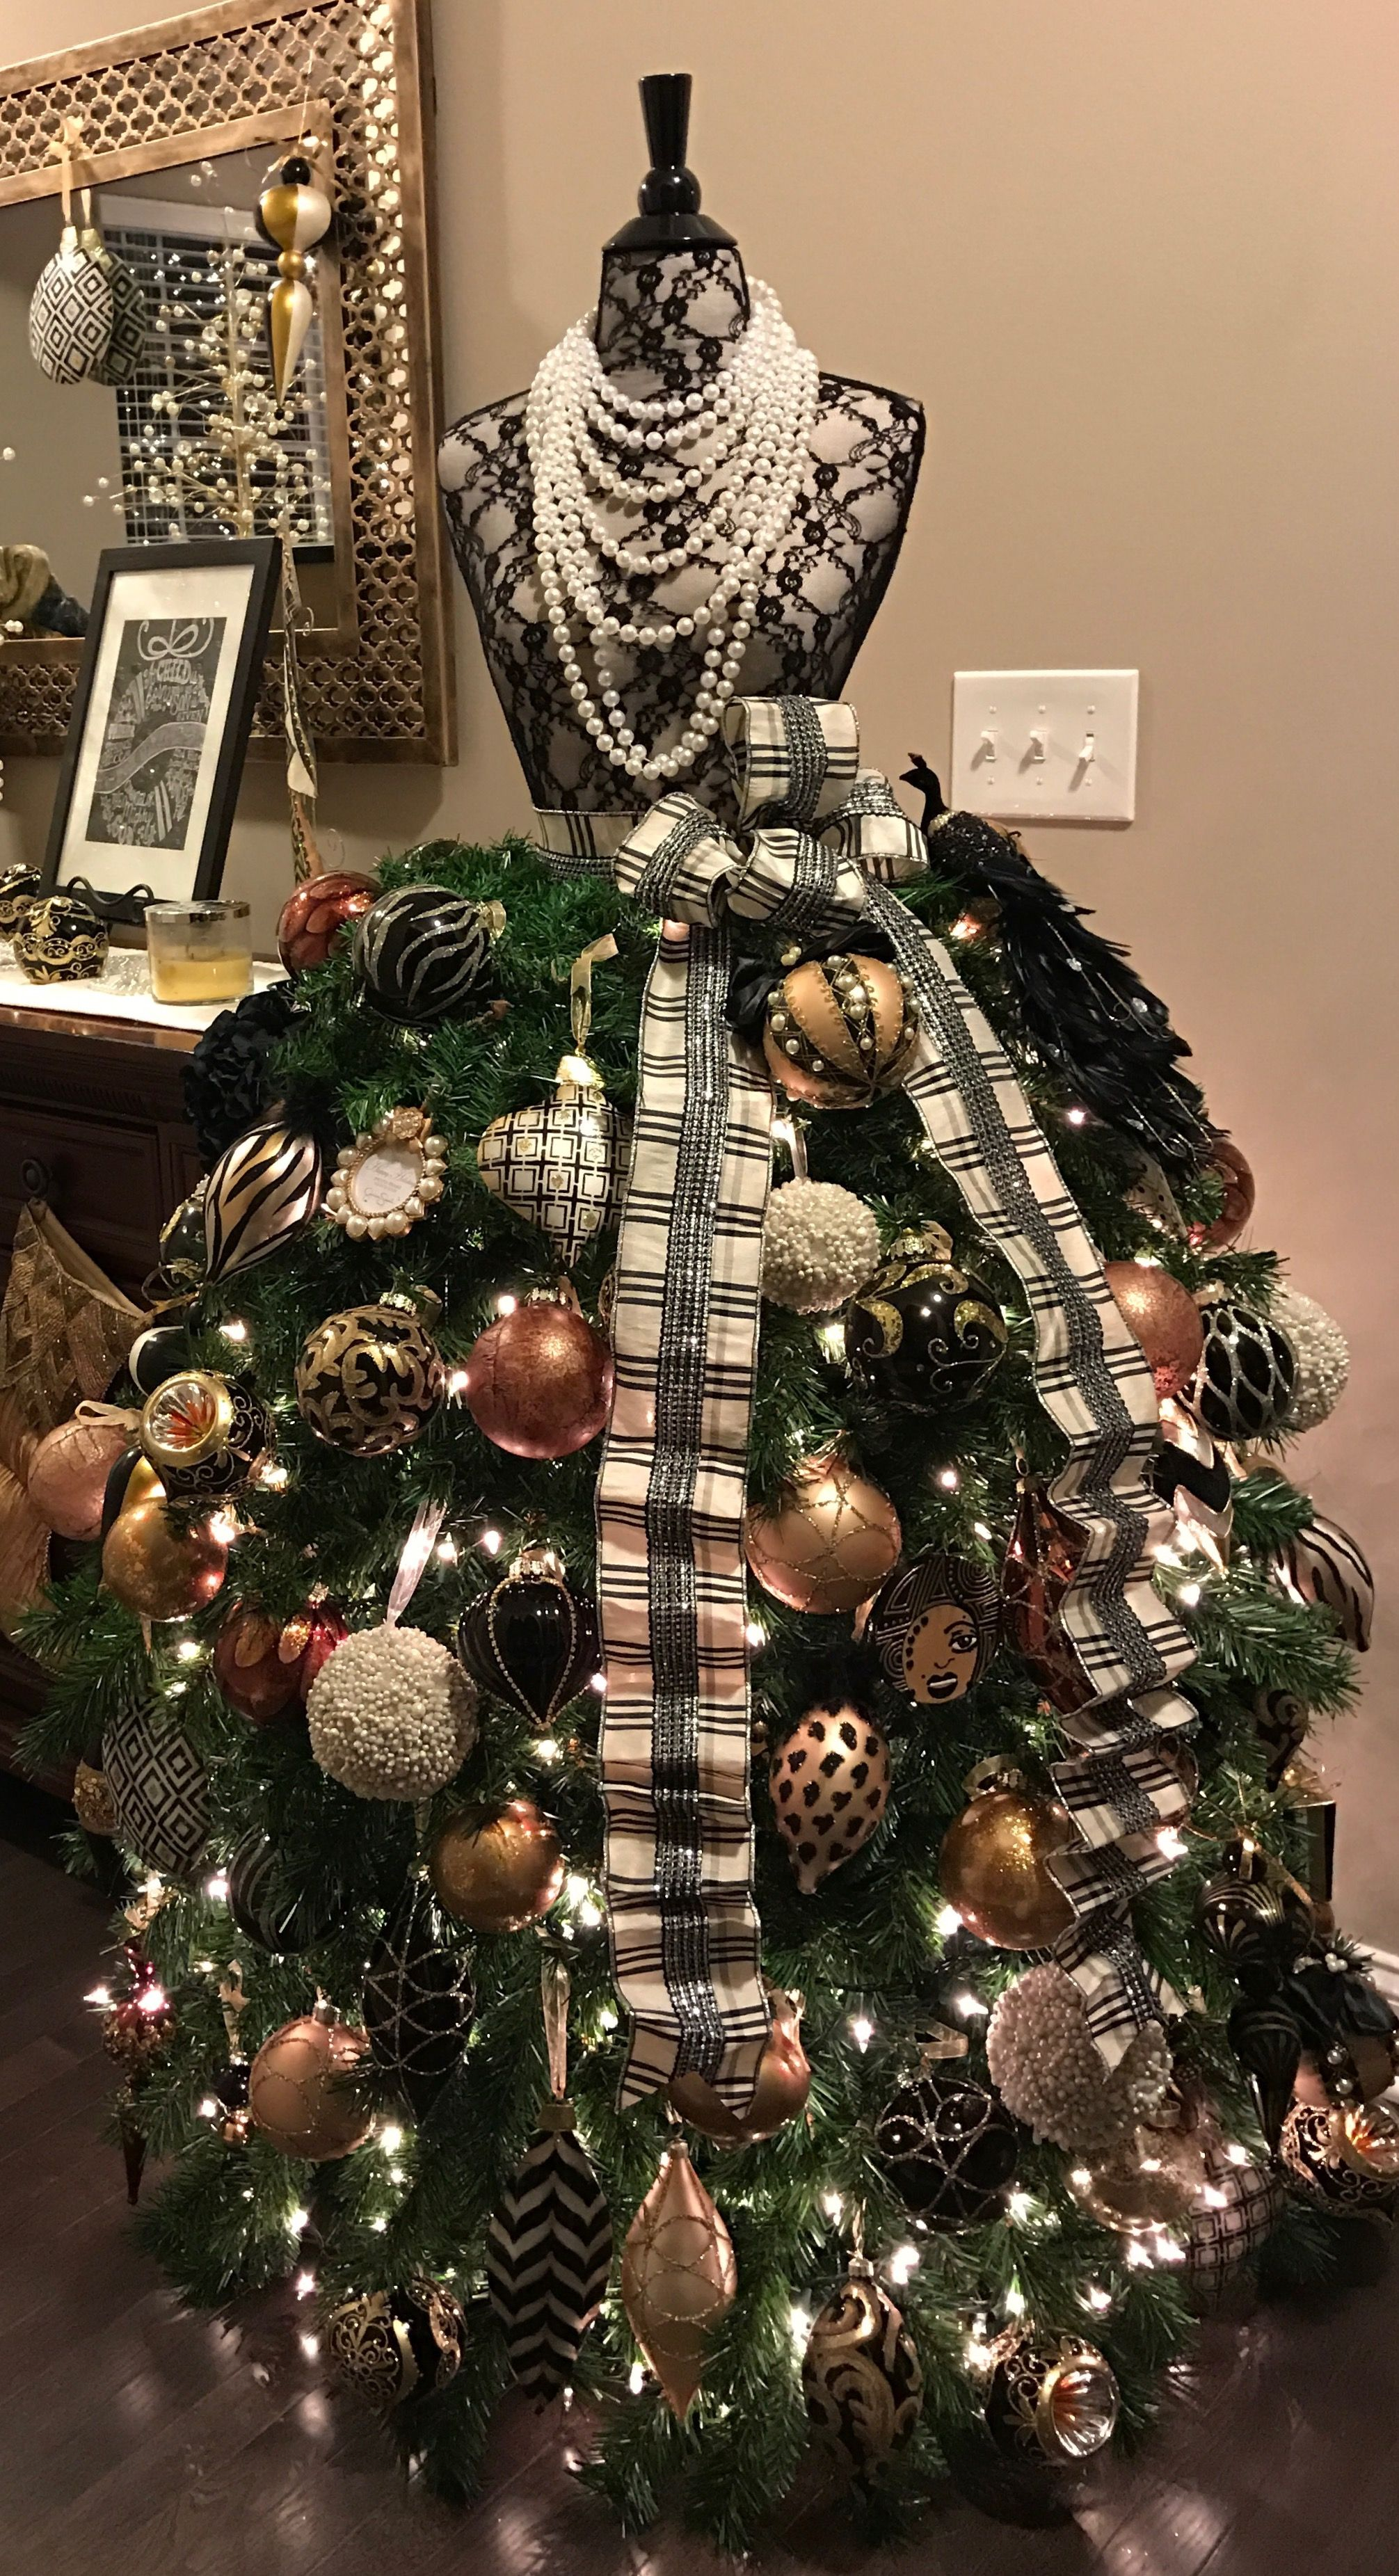 The 10 Best Grand Diva Style Dress Form Christmas Trees Dress Form Christmas Tree Mannequin Christmas Tree Christmas Tree Dress